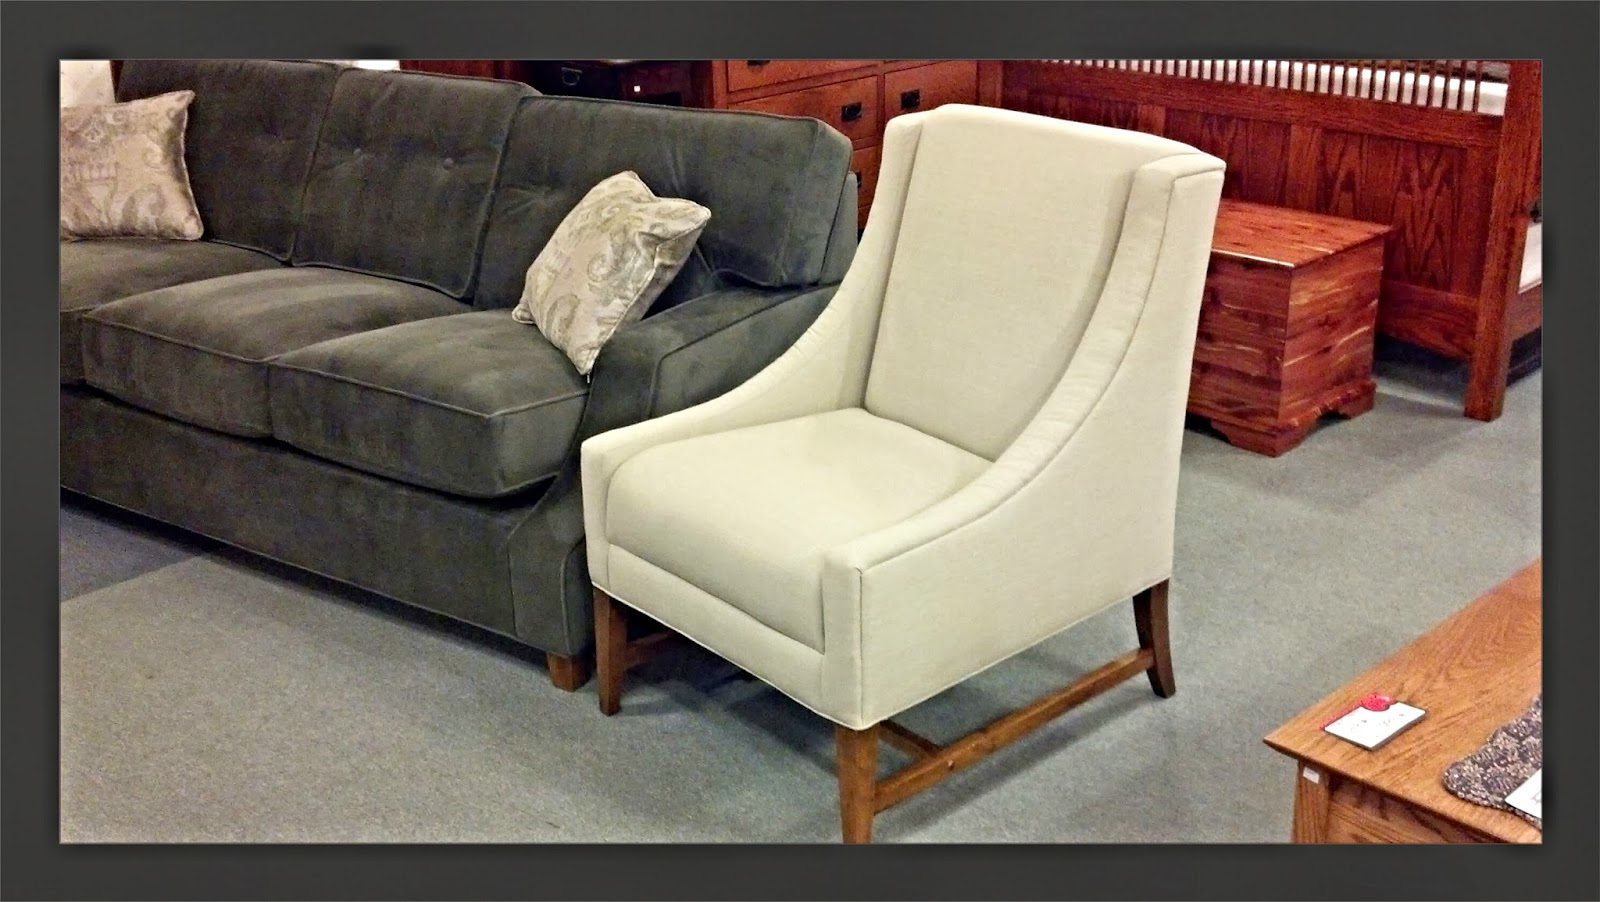 Binghamton Furniture: Parker Sofa & Ivy Chairnorwalk Furniture Inside Parker Sofa Chairs (Image 2 of 25)